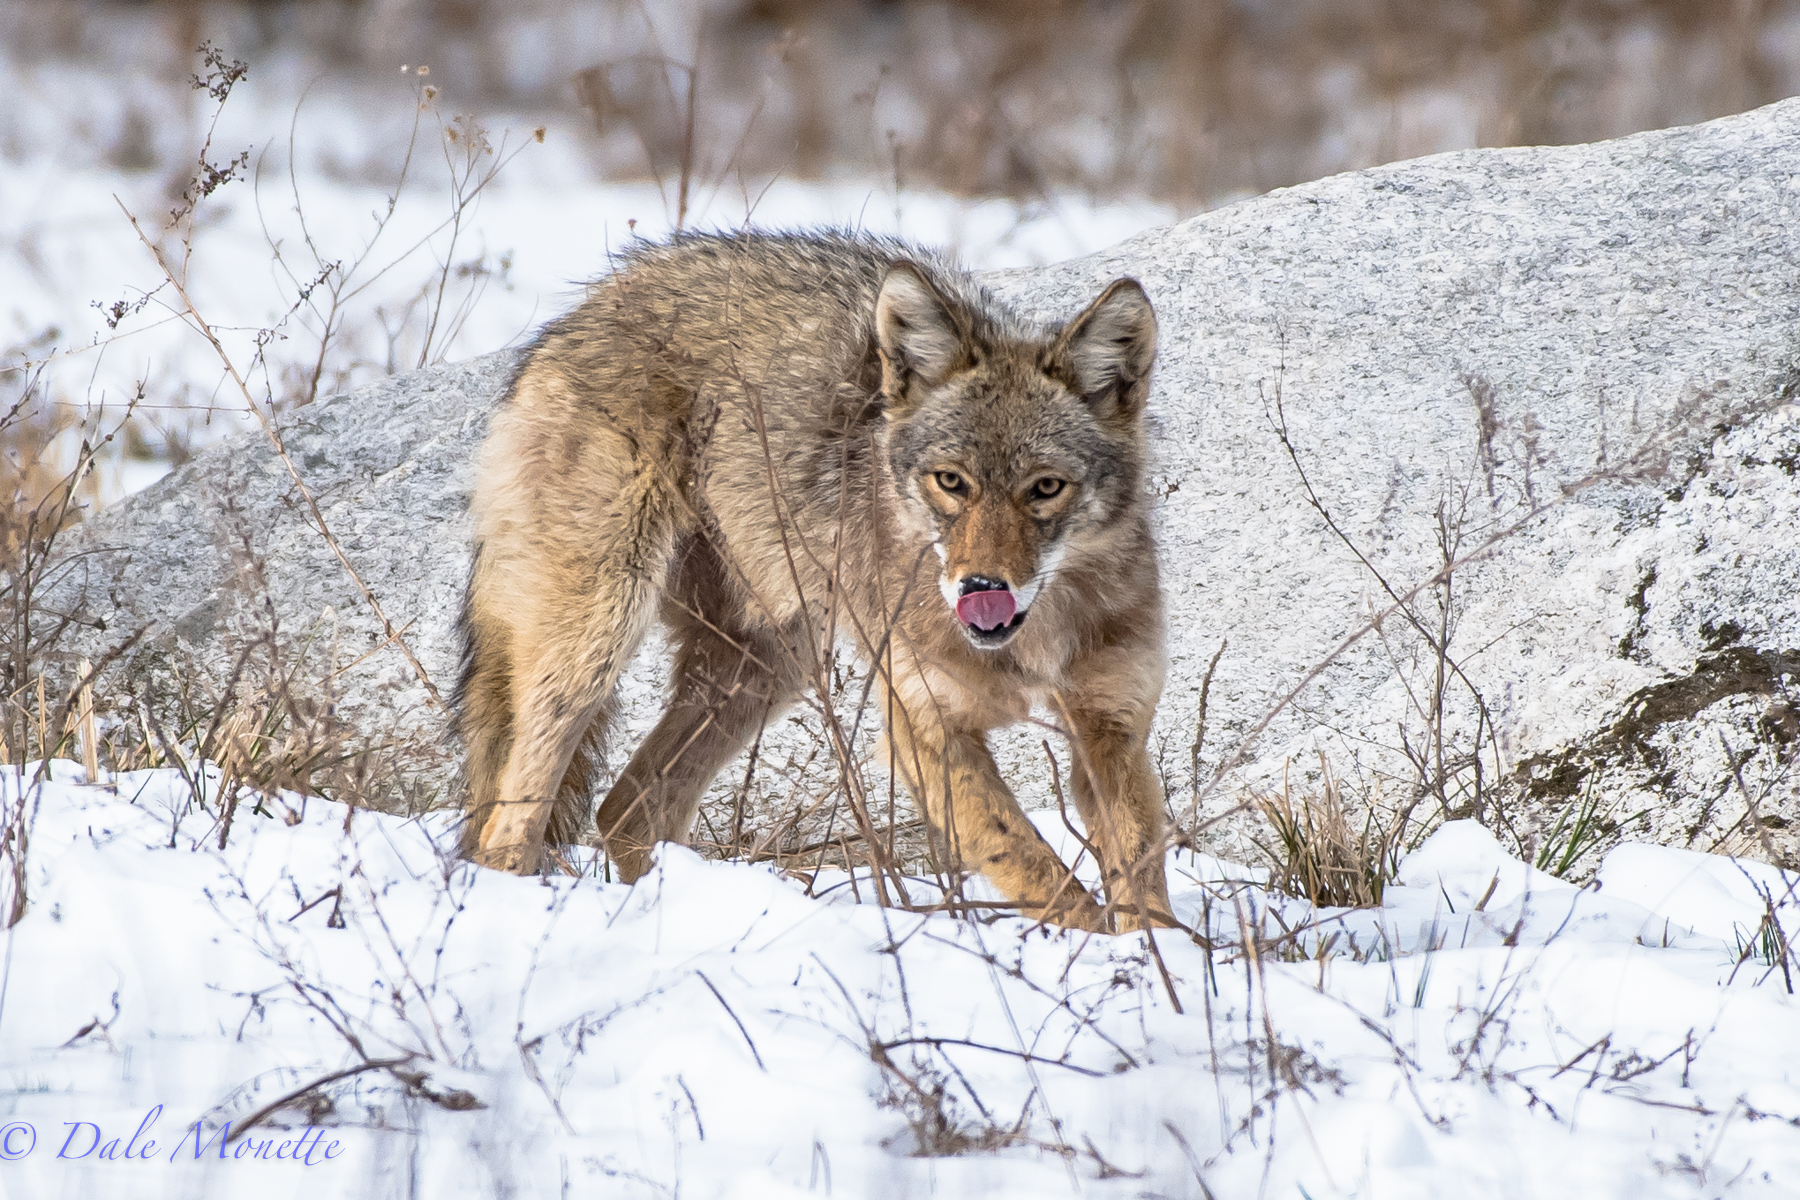 Last spring I watched this coyote catch and play with a vole in a big field.  I didnt see this tongue out until after I got home !